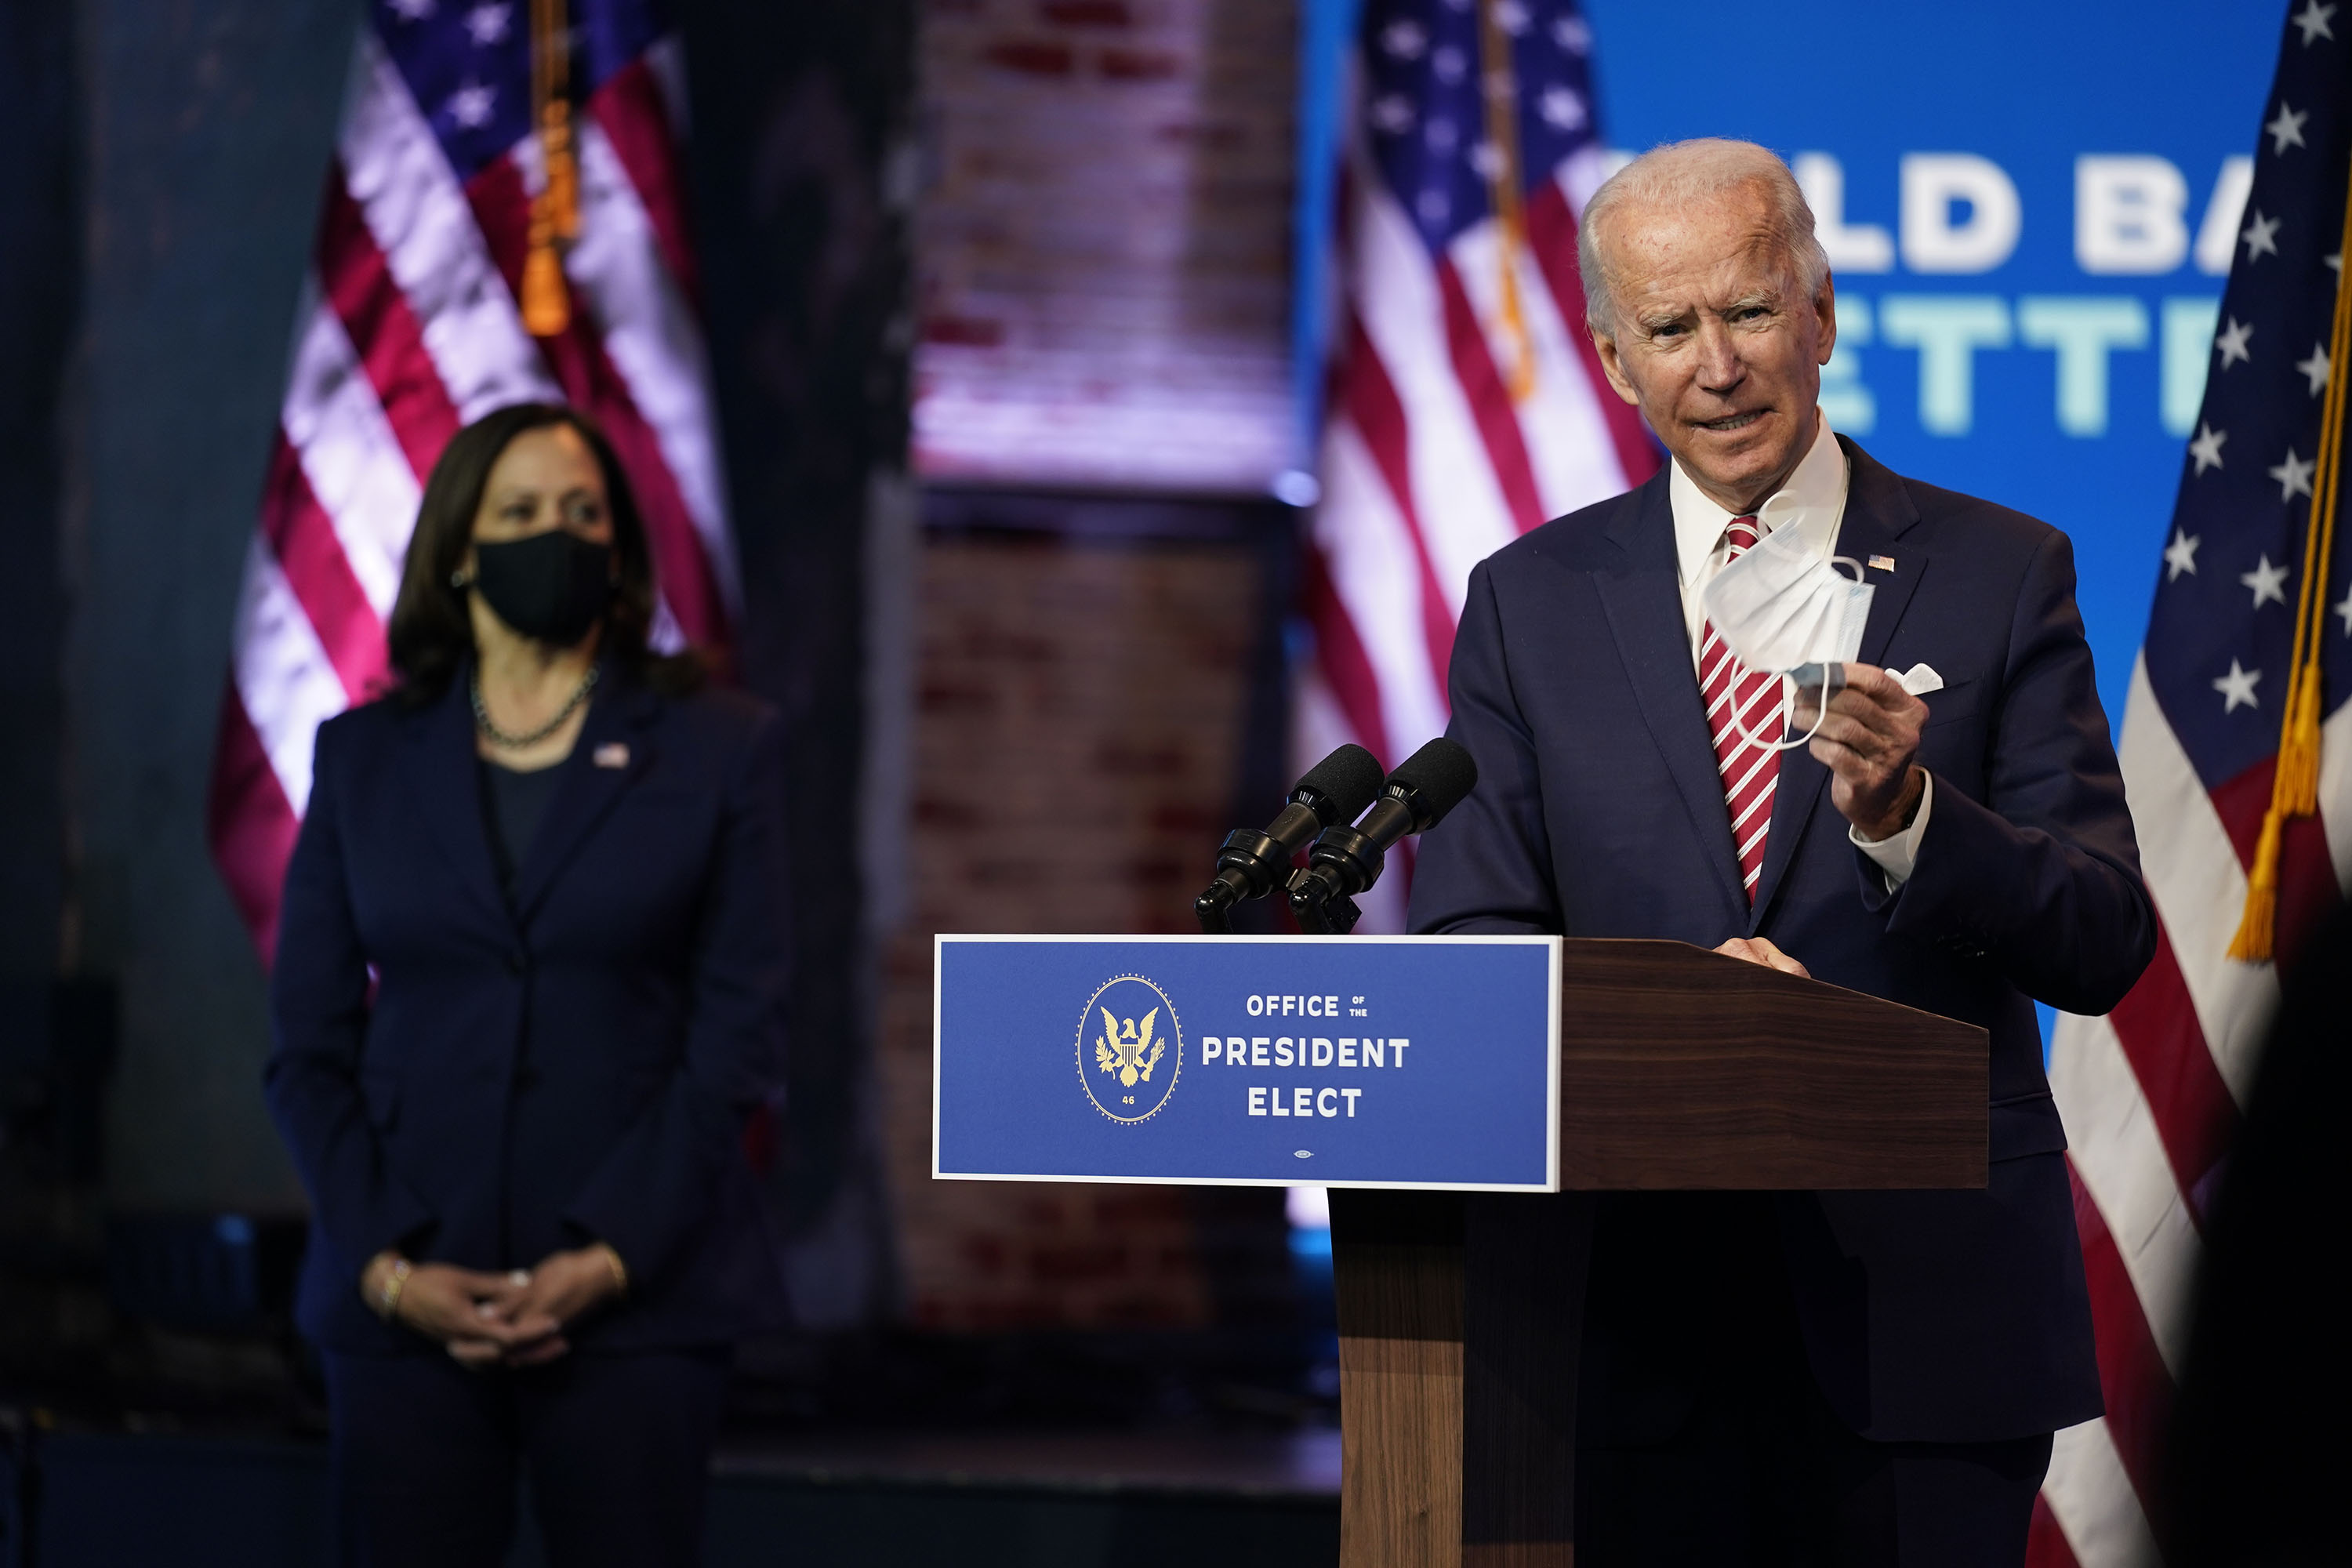 President-elect Joe Biden, accompanied by Vice President-elect Kamala Harris, speaks at The Queen theater in Wilmington, Delaware, on November 16.